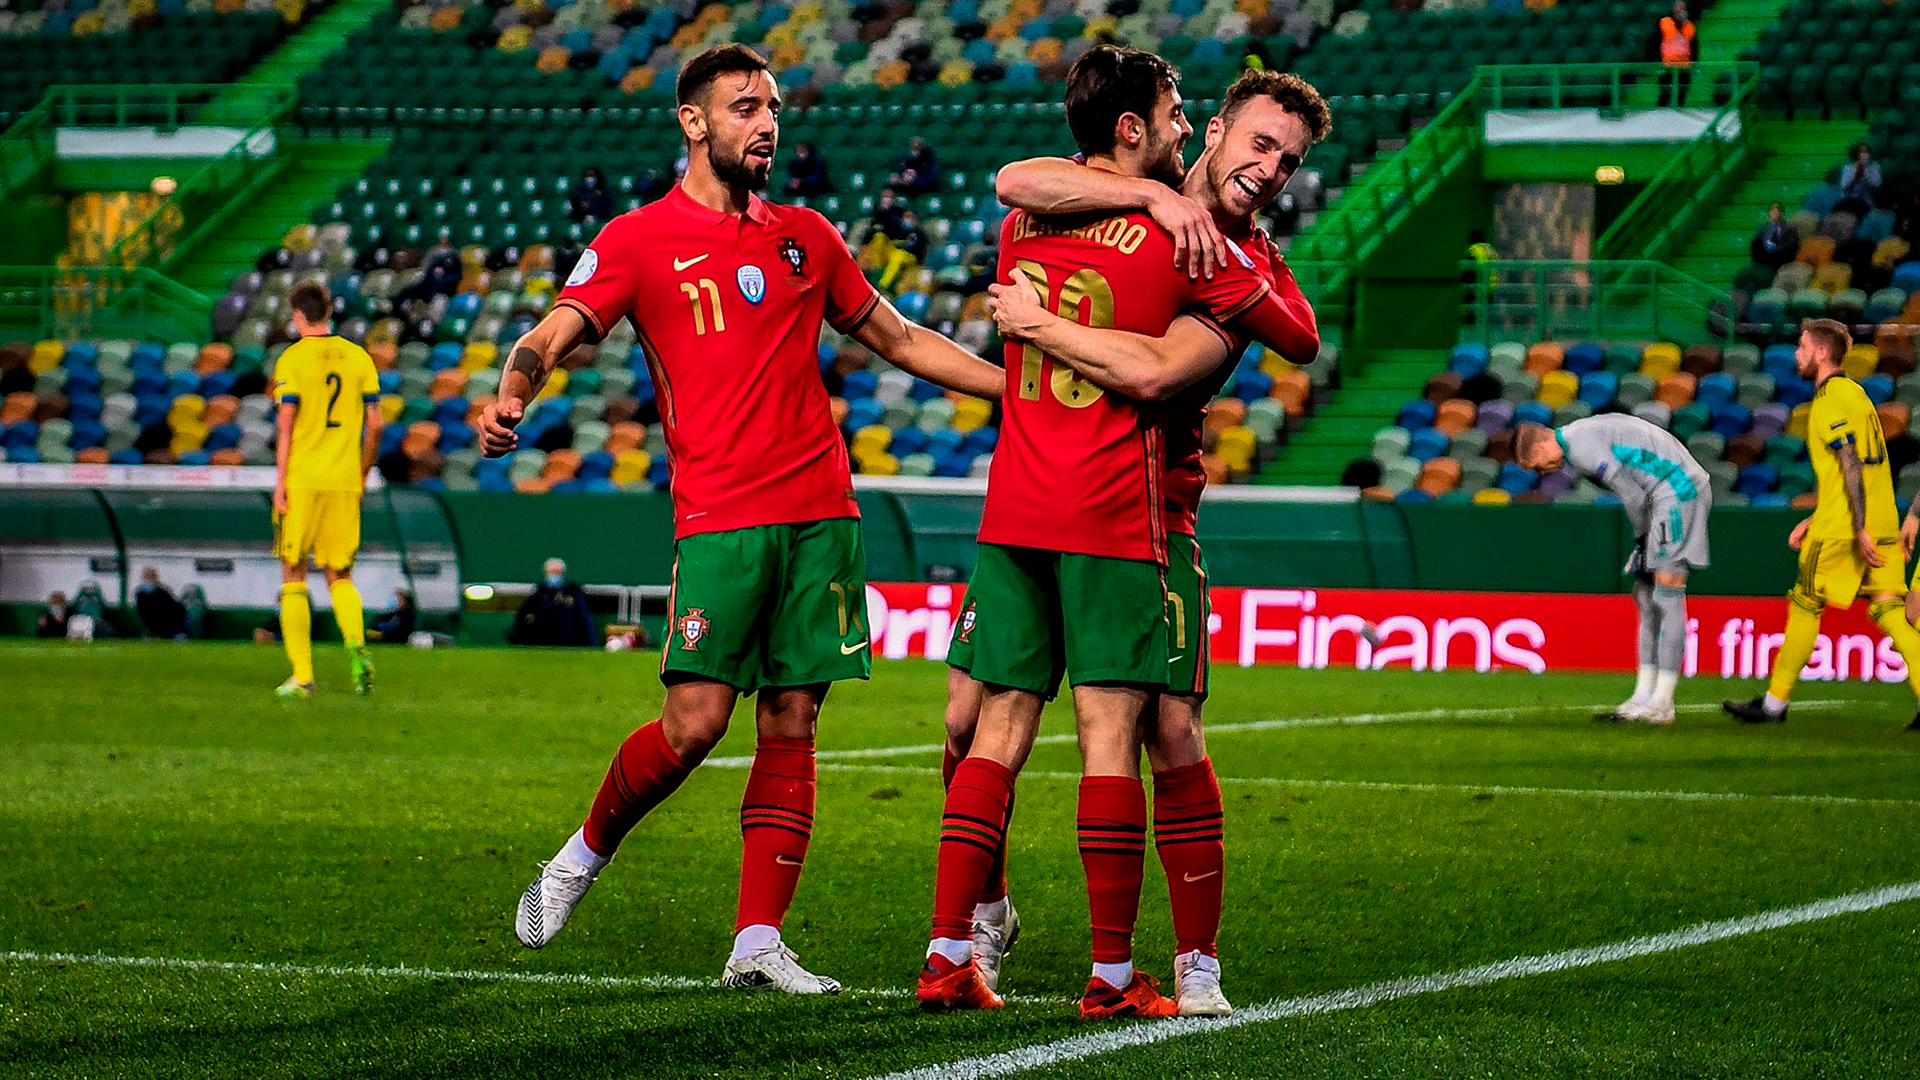 Ronaldo absence didn't change Portugal but winning is easier with best in the world, says Fernandes